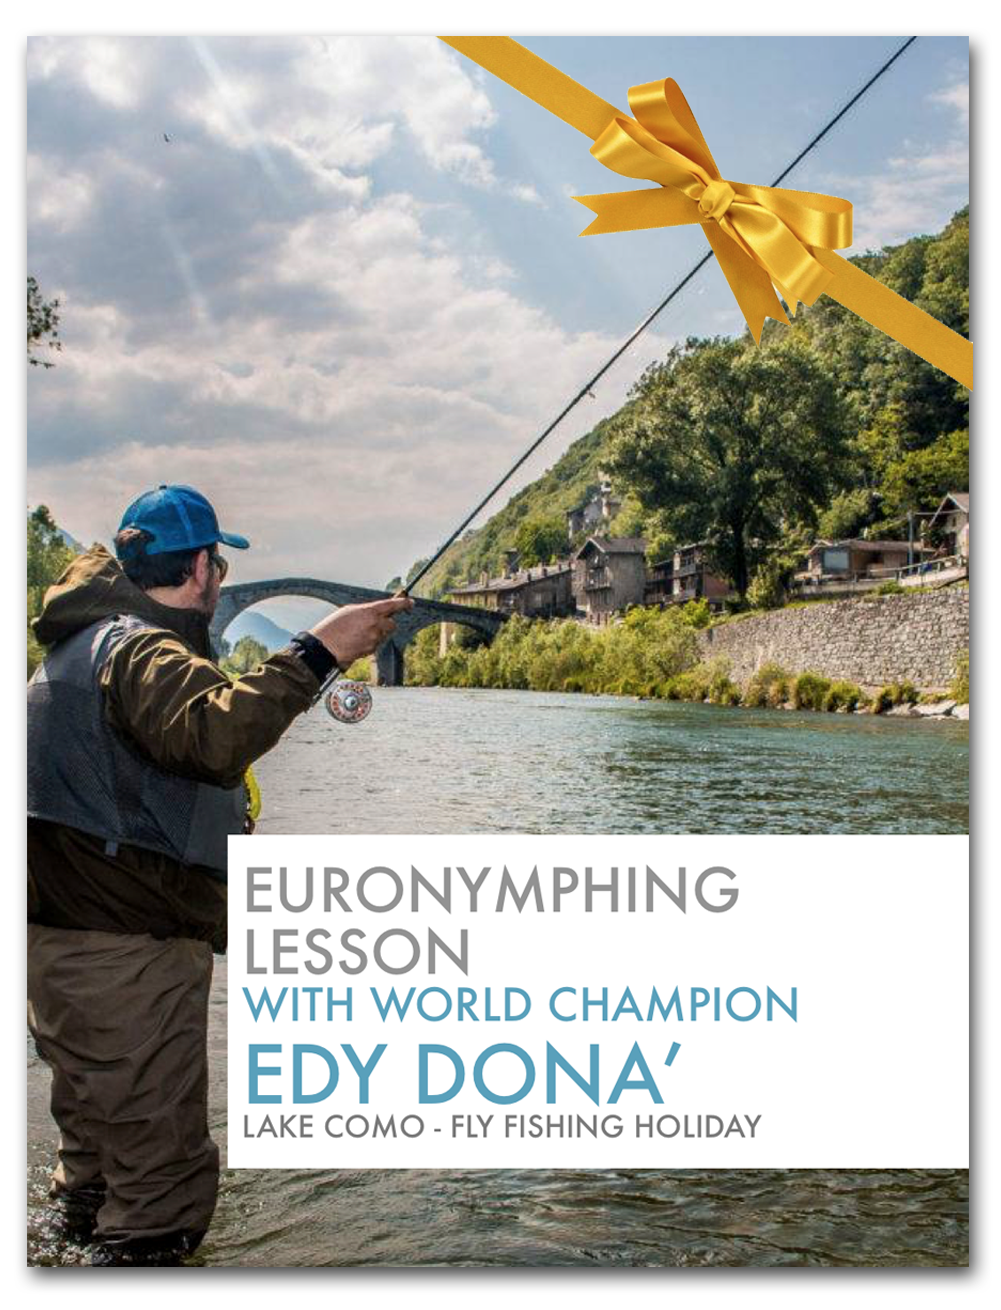 Guided Fly Fishing or Lessons with World Champion Edy Dona' - Whieldon Fly Fishing